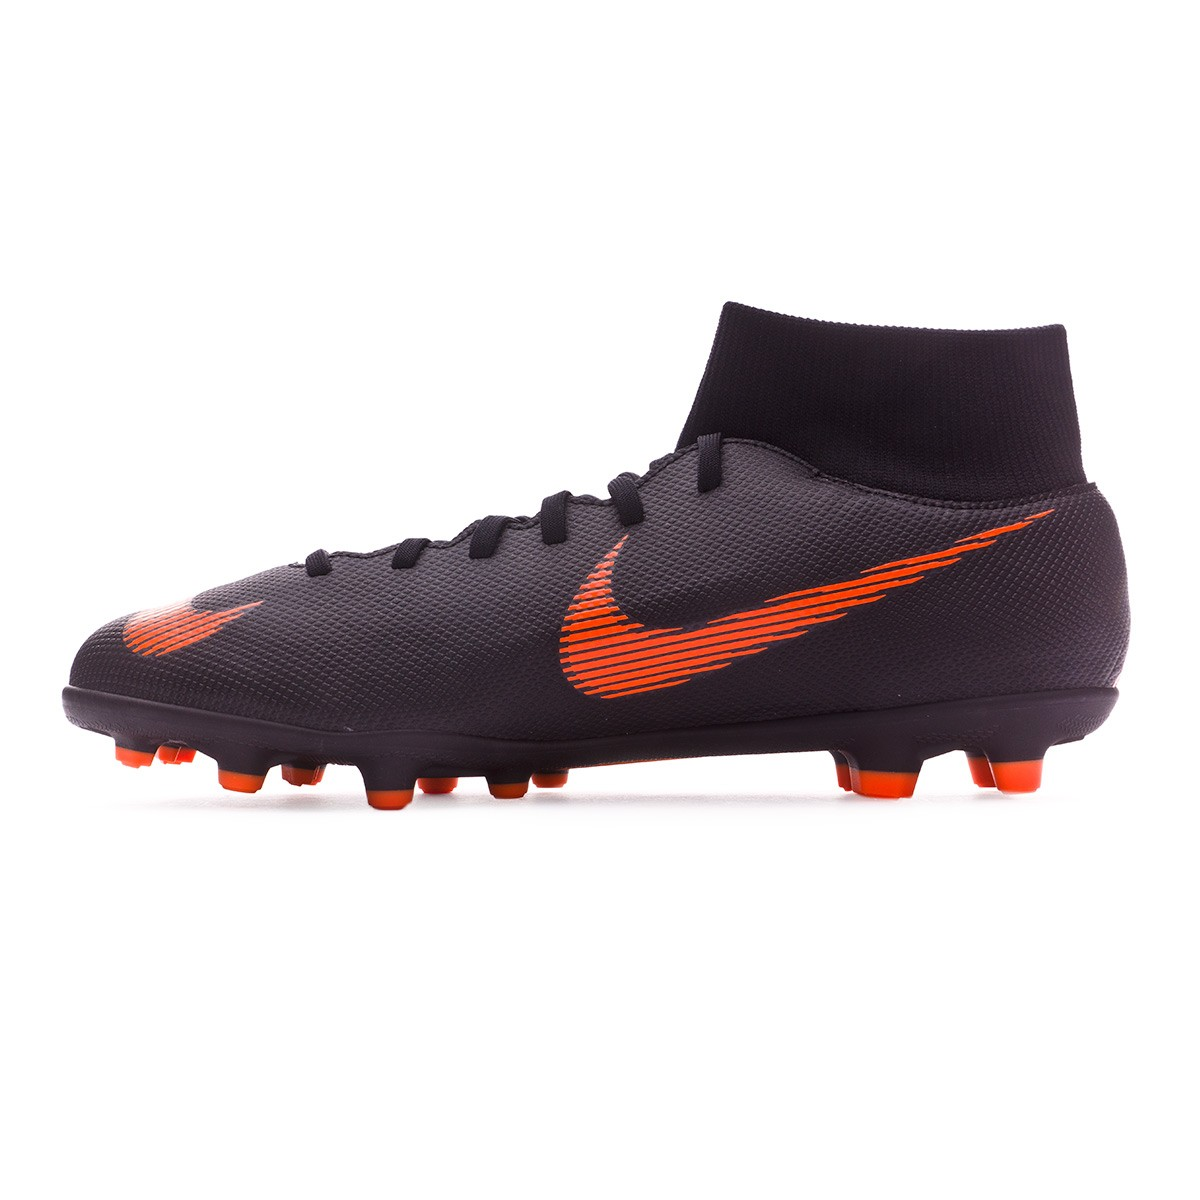 online store 20ad6 efb66 Boot Nike Mercurial Superfly VI Club MG Black-Total orange-White - Tienda  de fútbol Fútbol Emotion